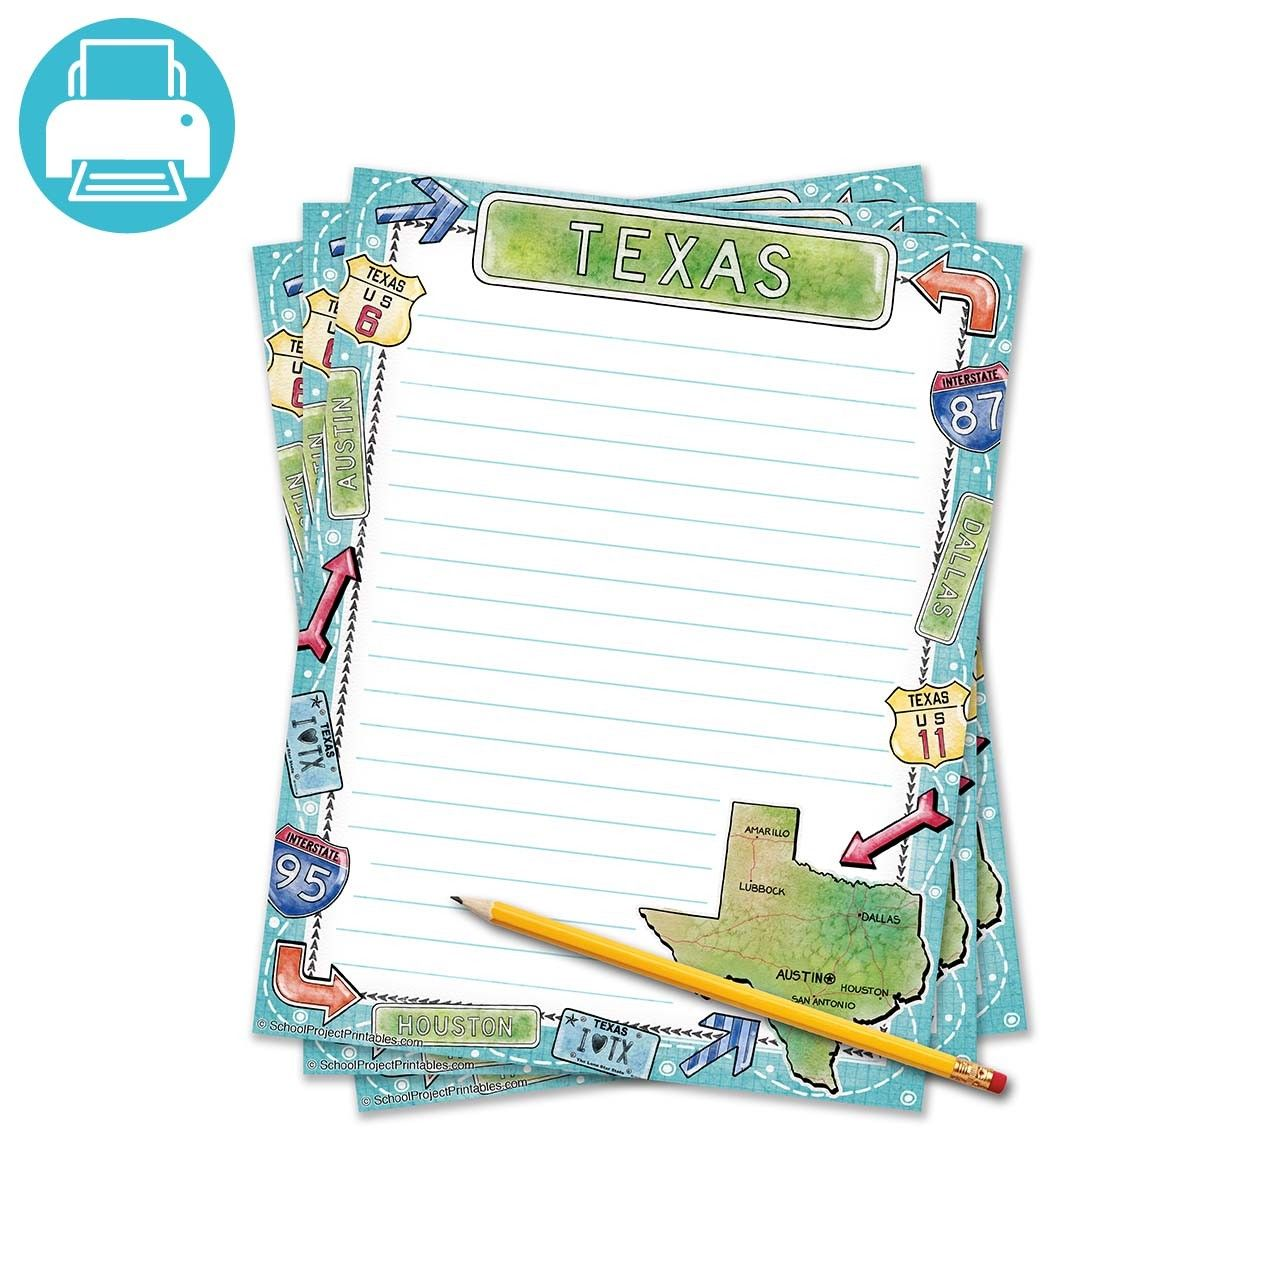 Texas Writing Template Border Paper